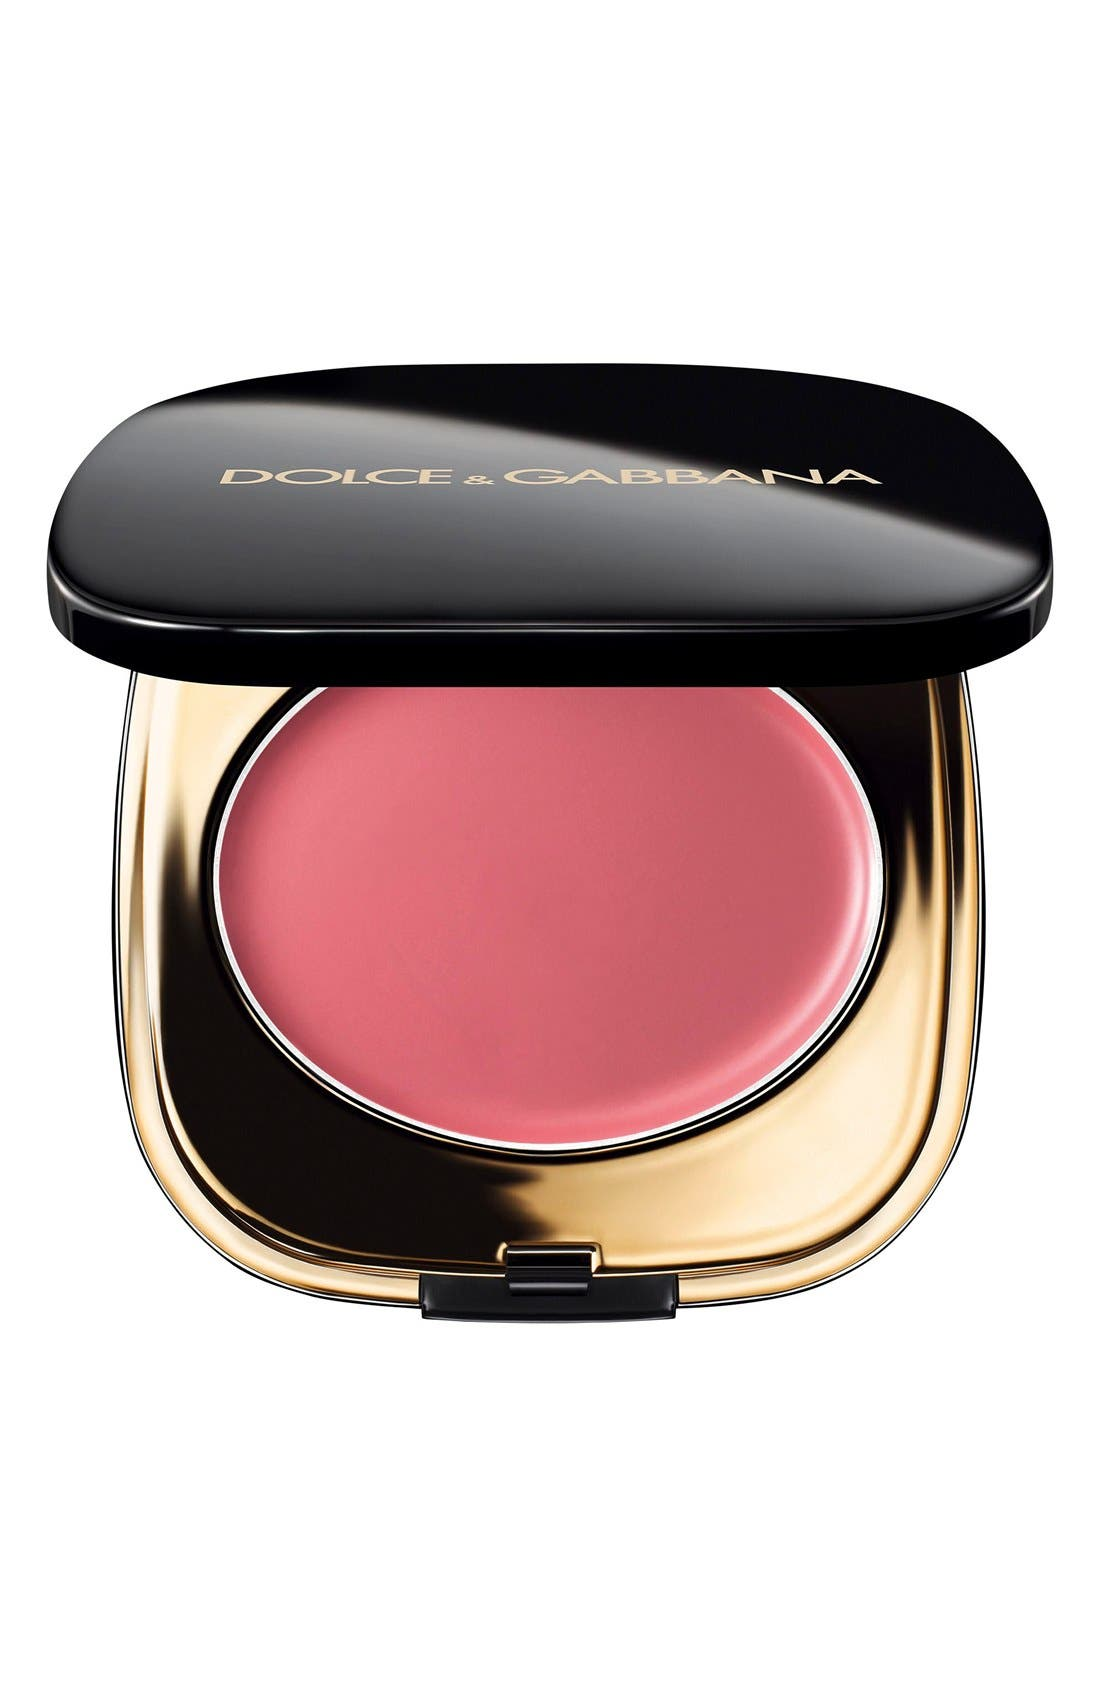 Dolce&Gabbana Beauty 'Blush of Roses' Creamy Face Colour